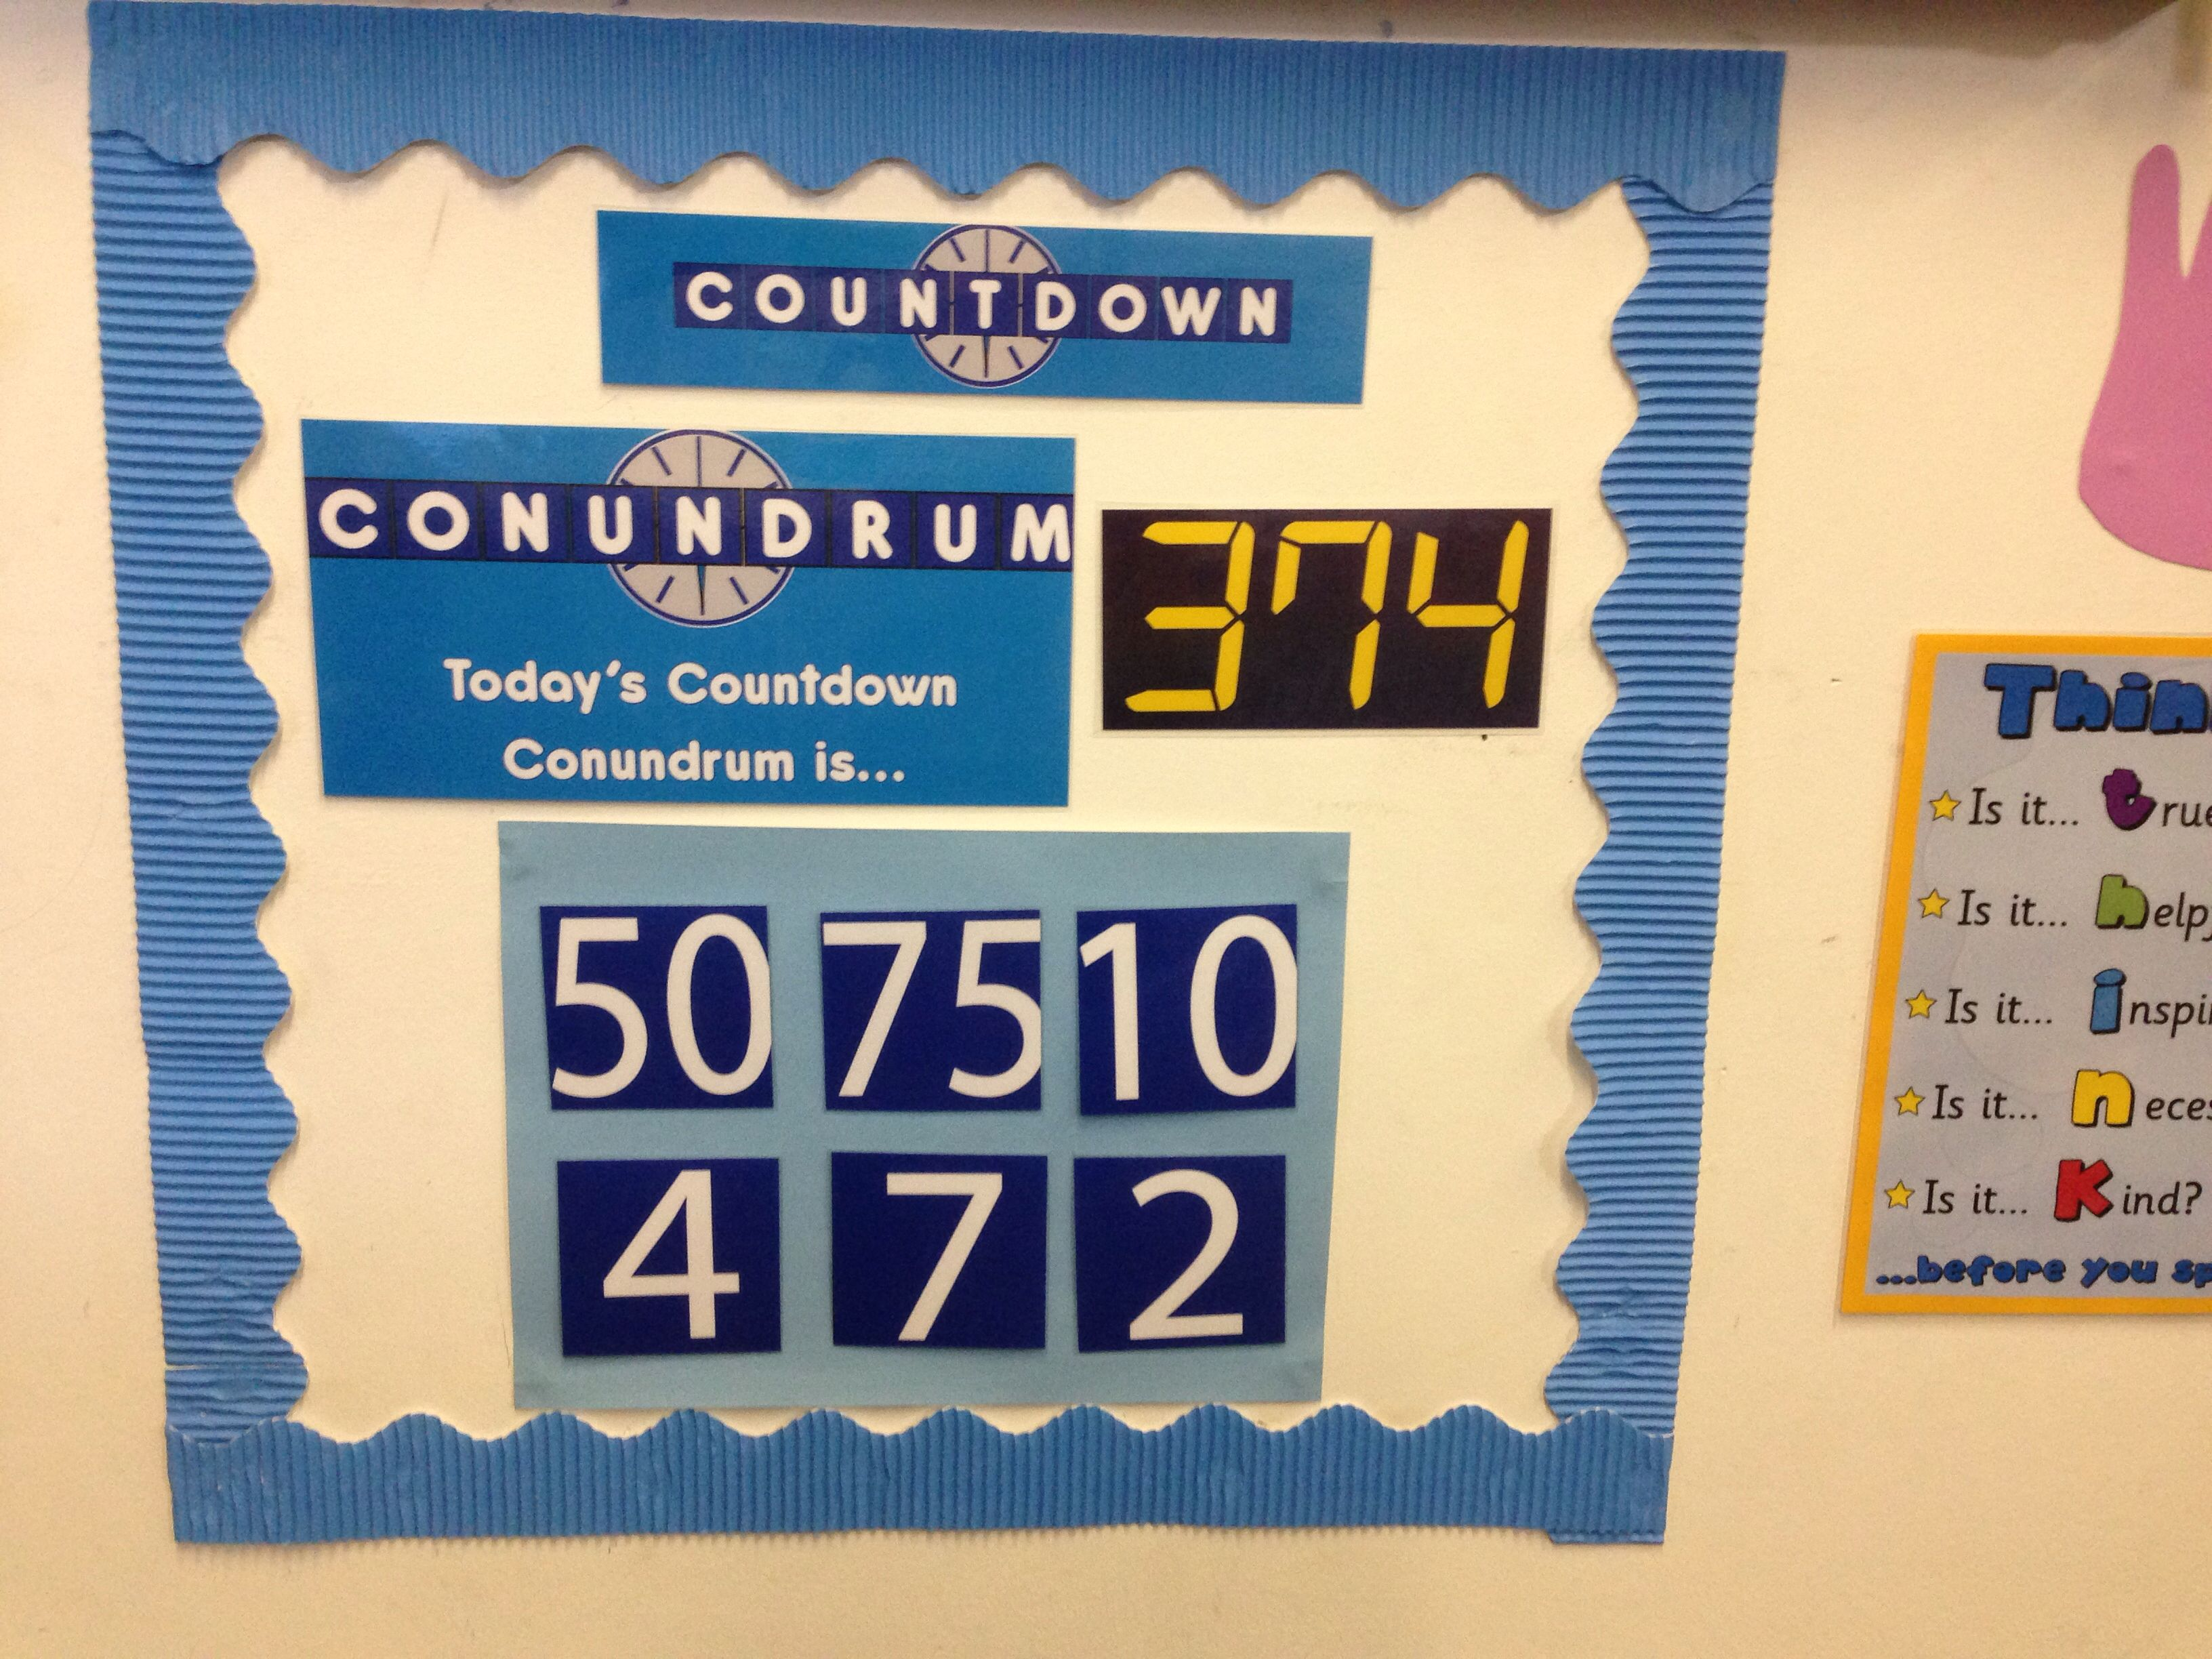 Countdown Conundrum Board My Kids Love Racing To Be The First To Get To Or Closest To The Target Num Classroom Displays High School Classroom School Classroom [ 2448 x 3264 Pixel ]